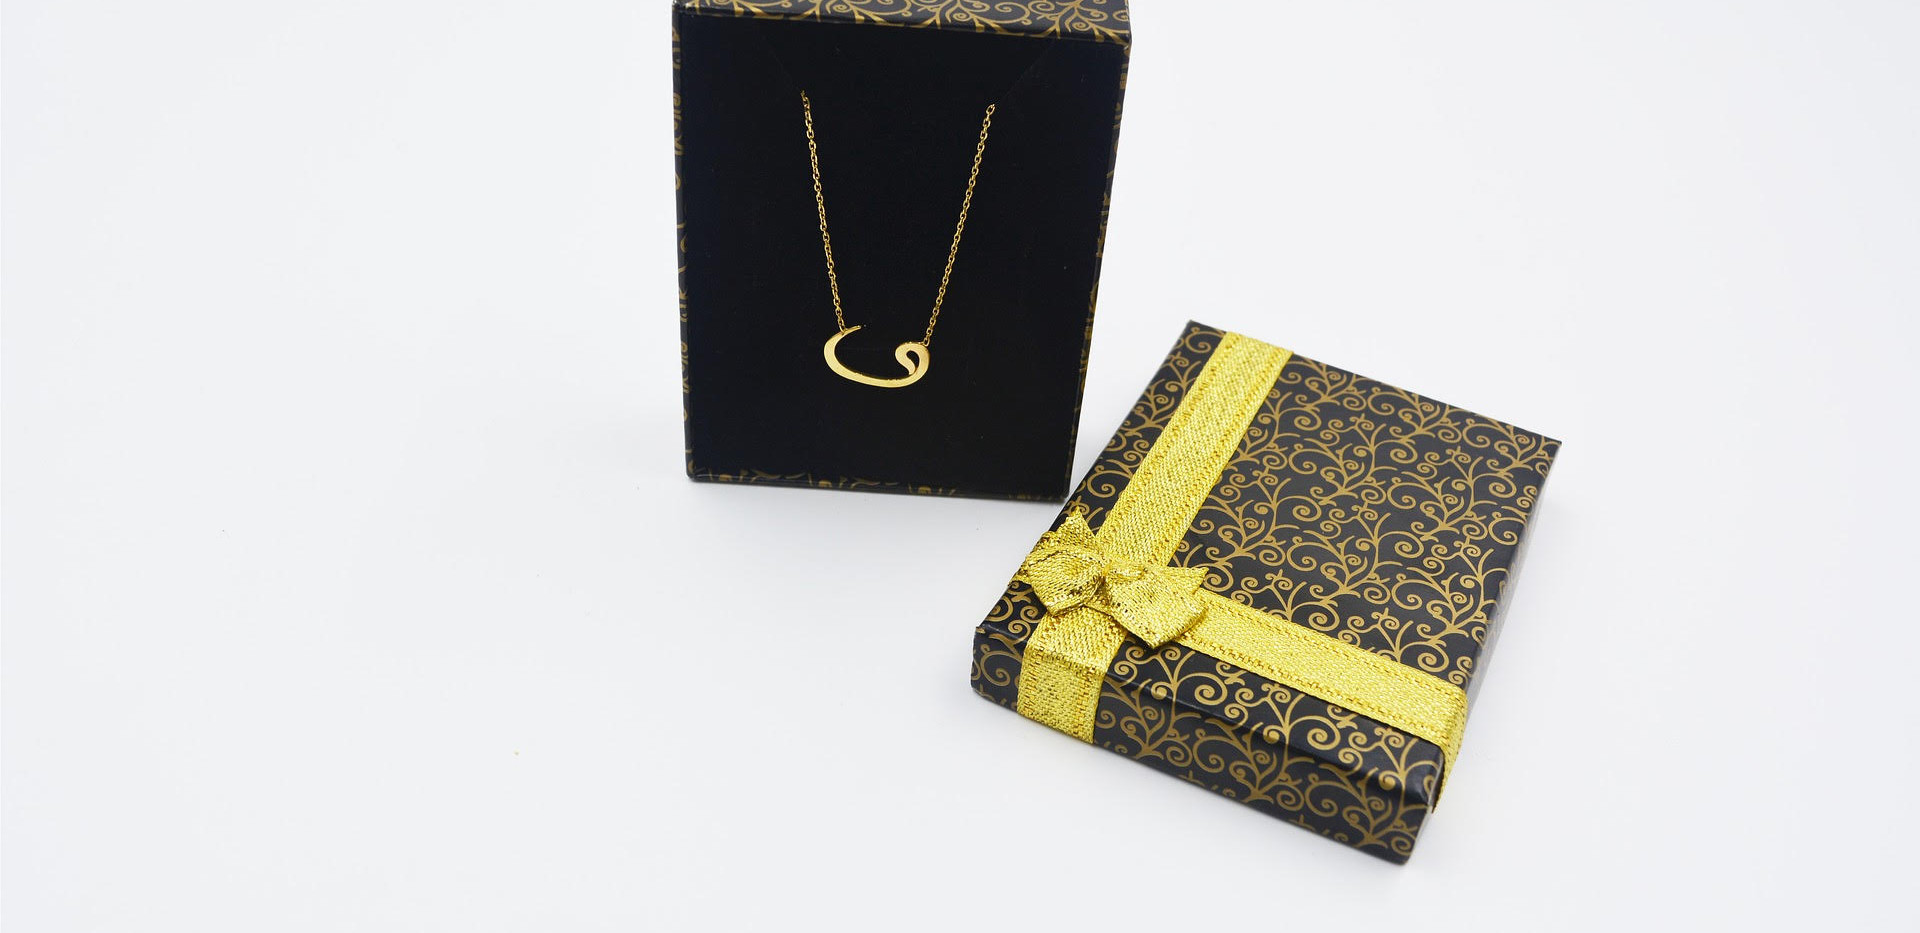 necklace box.jpg